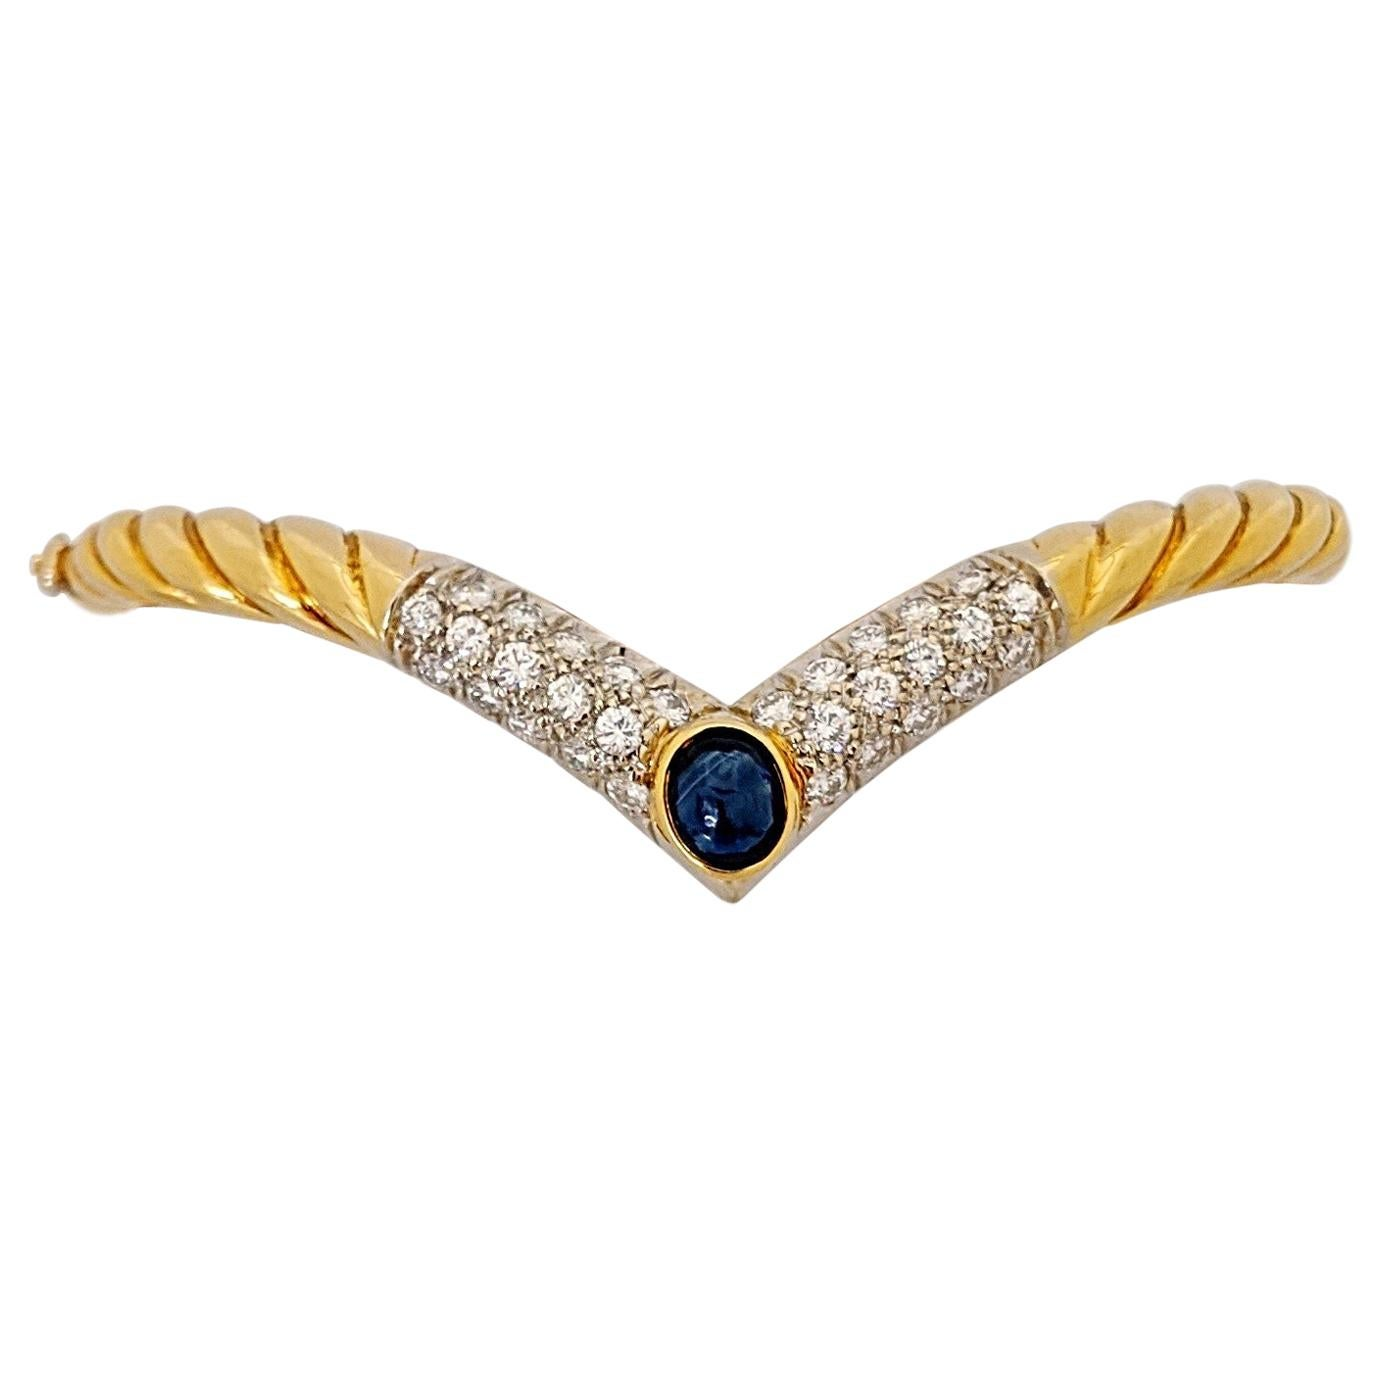 18KT Yellow Gold Bangle Bracelet with 1.26CT. Diamonds & 1.Ct. Cabochon Sapphire